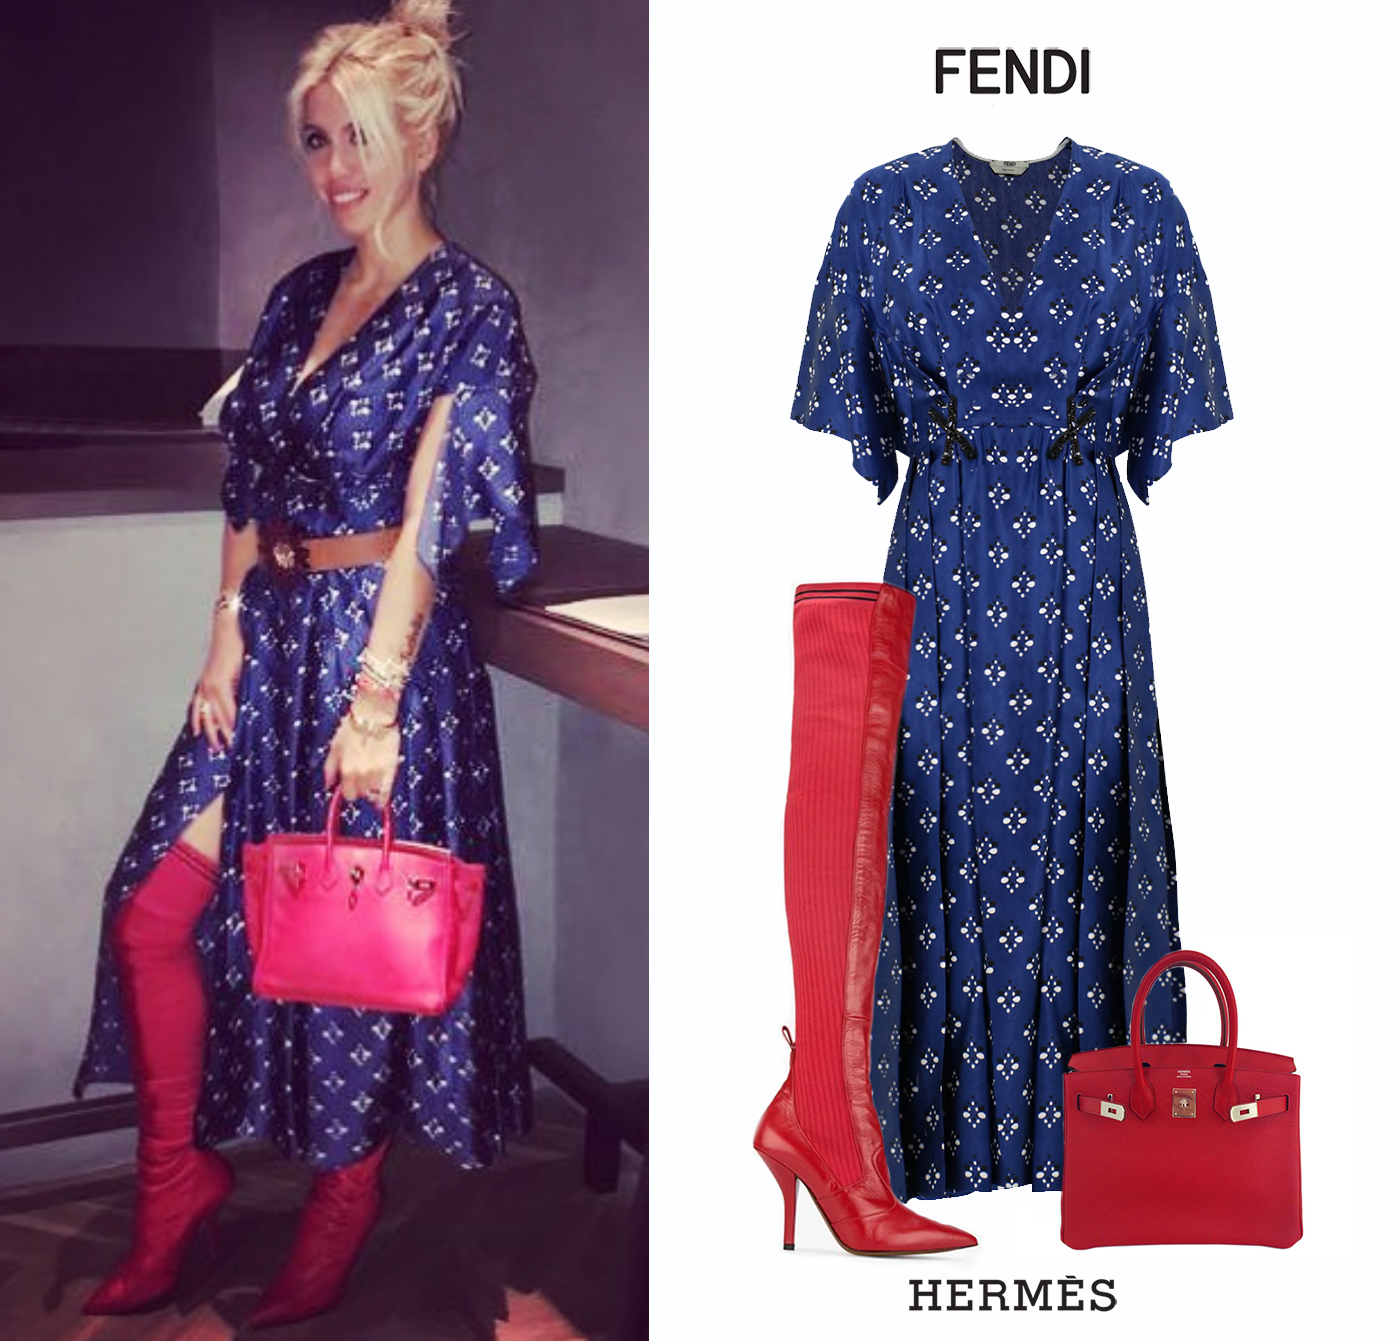 Wanda_Nara_Campione_Campo_Vita_Vestido_Fendi_Printed_Blue_Robe_Dress_Rockoko_Red_Over_The_Knee_Boots_Botas-Hermes_Bikin_Cartera.jpg